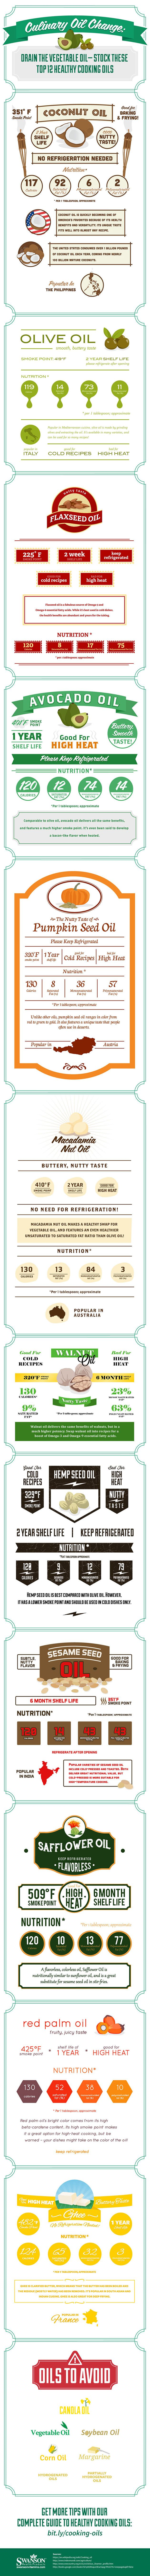 Top 12 Healthy Cooking Oils Infographic